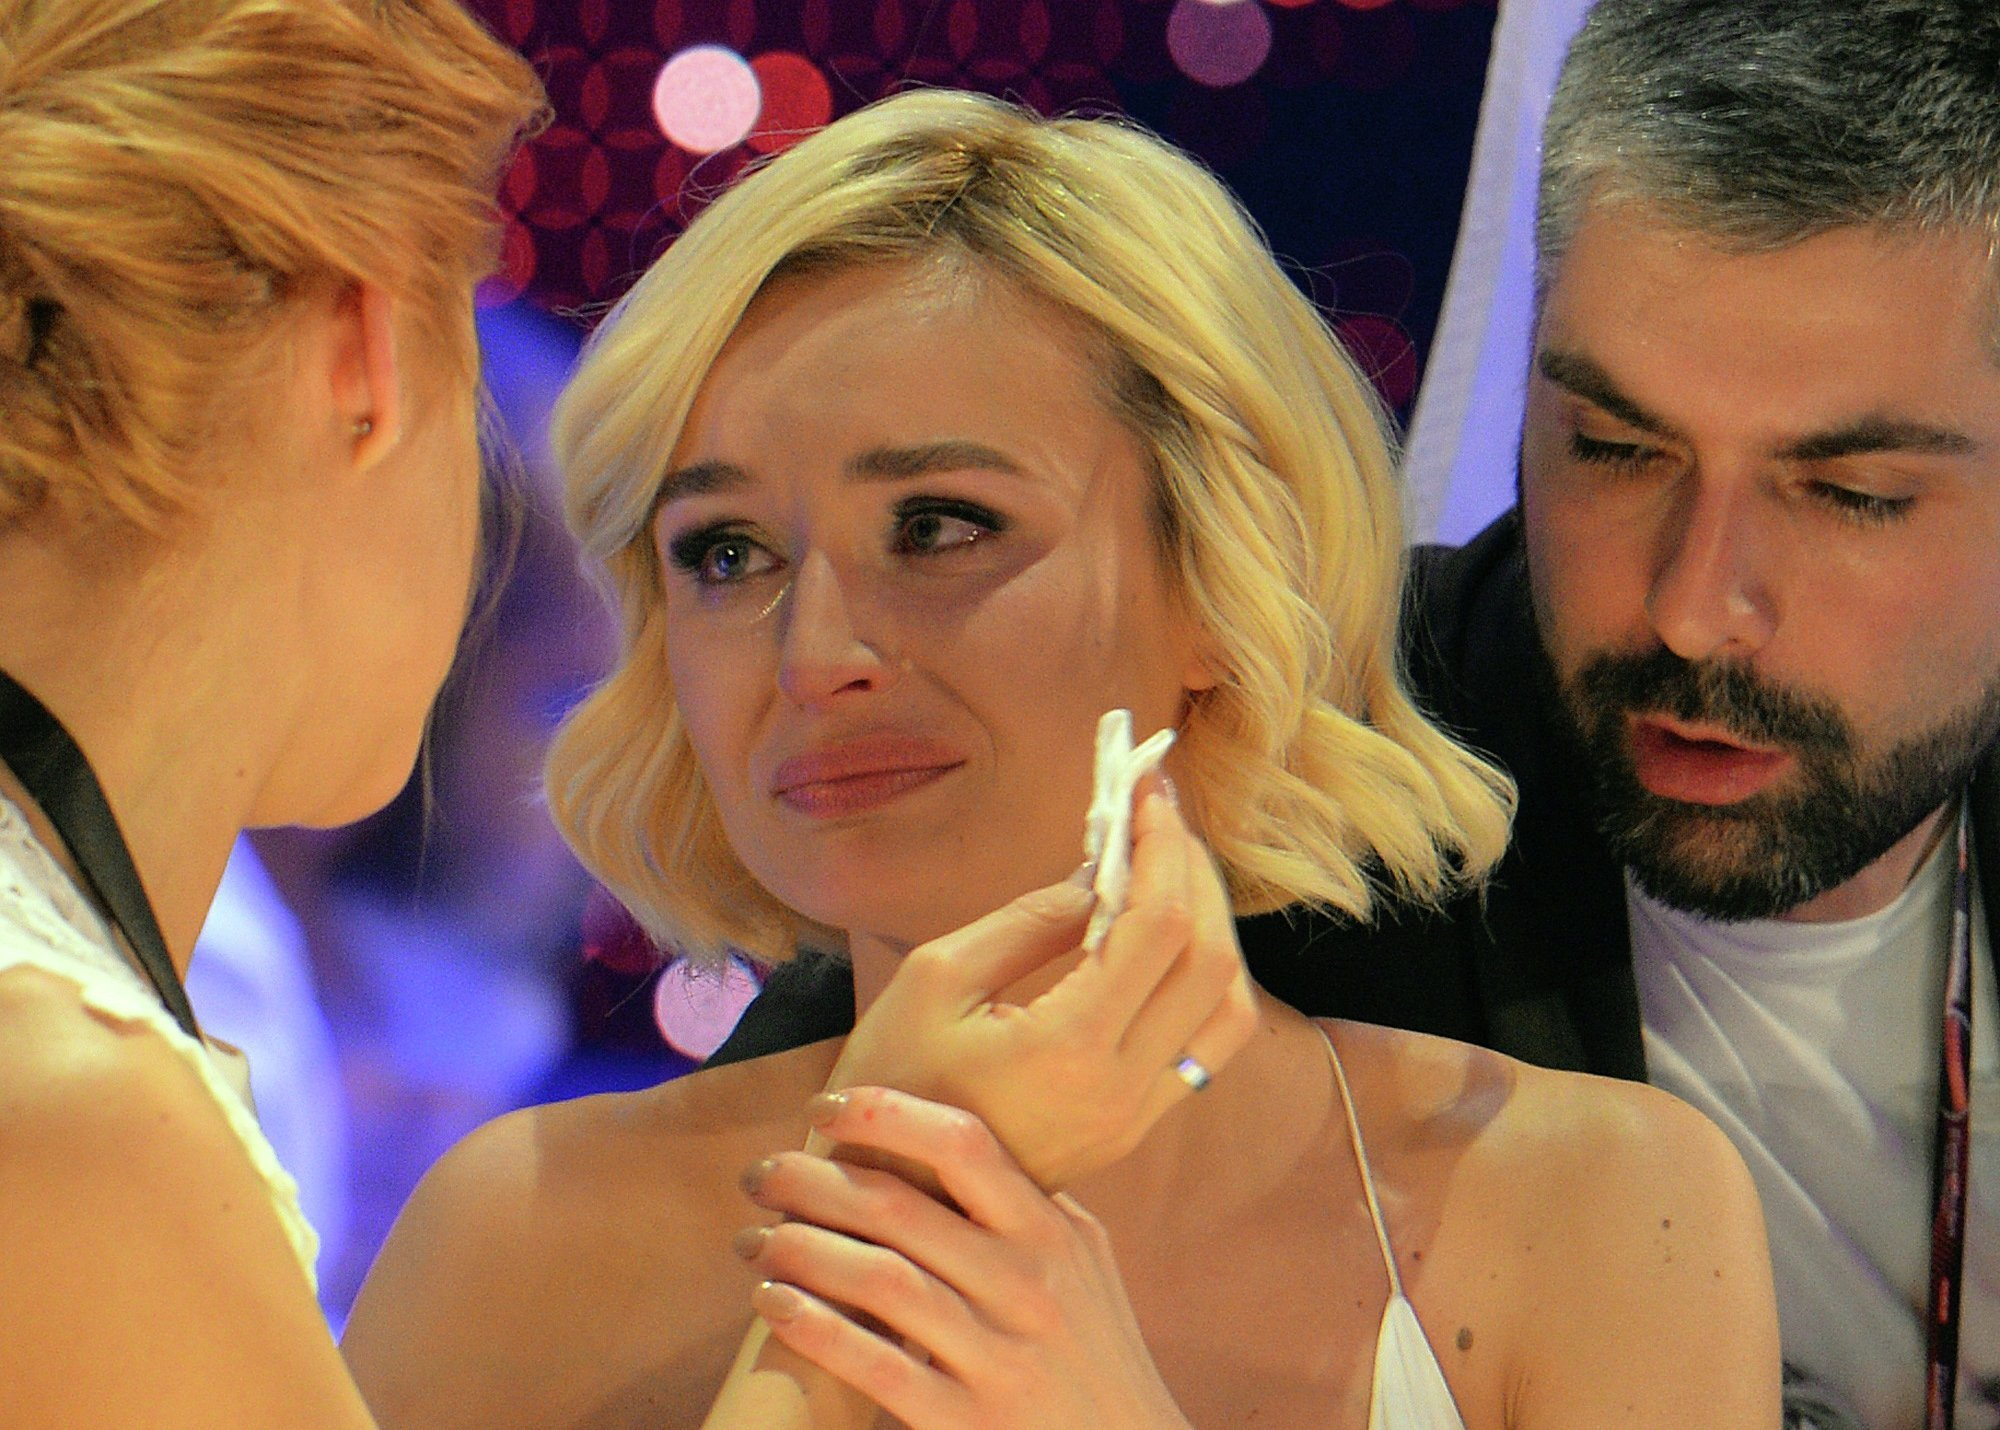 Polina Gagarina representing Russia, centre, reacts as the results start to come in during the final of the Eurovision Song Contest in Austria's capital Vienna, Saturday, May 23, 2015